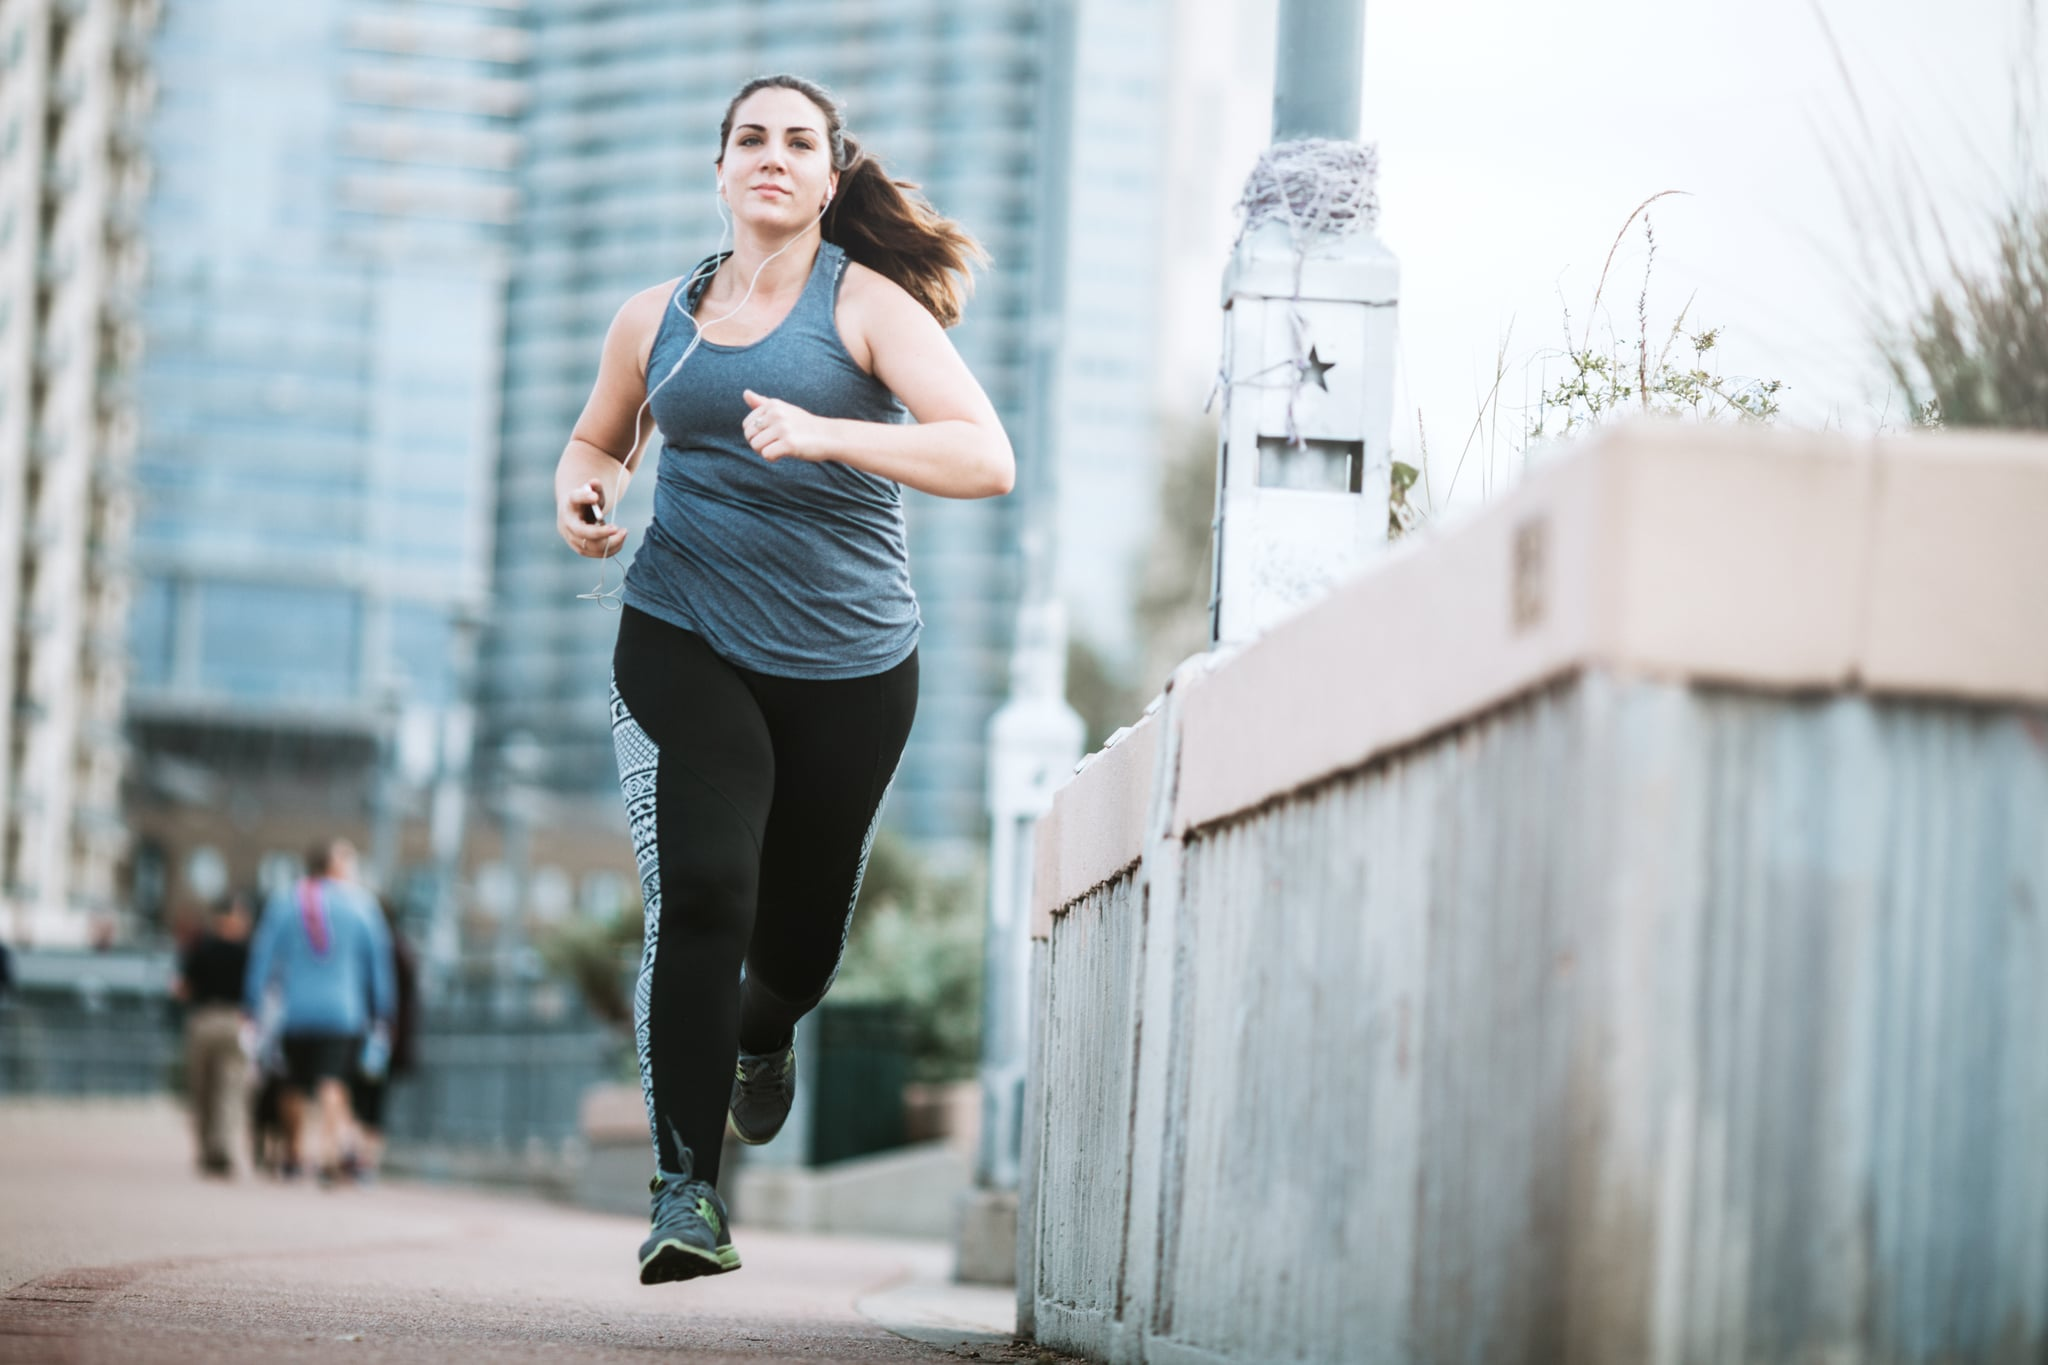 A young adult woman goes for a morning run, crossing the Lamar Street pedestrian bridge in Austin, Texas.  The bridge gets a large volume of foot traffic in the morning with people exercising at the start of their day.  She has a focussed look of determination, listening to music on her smartphone.